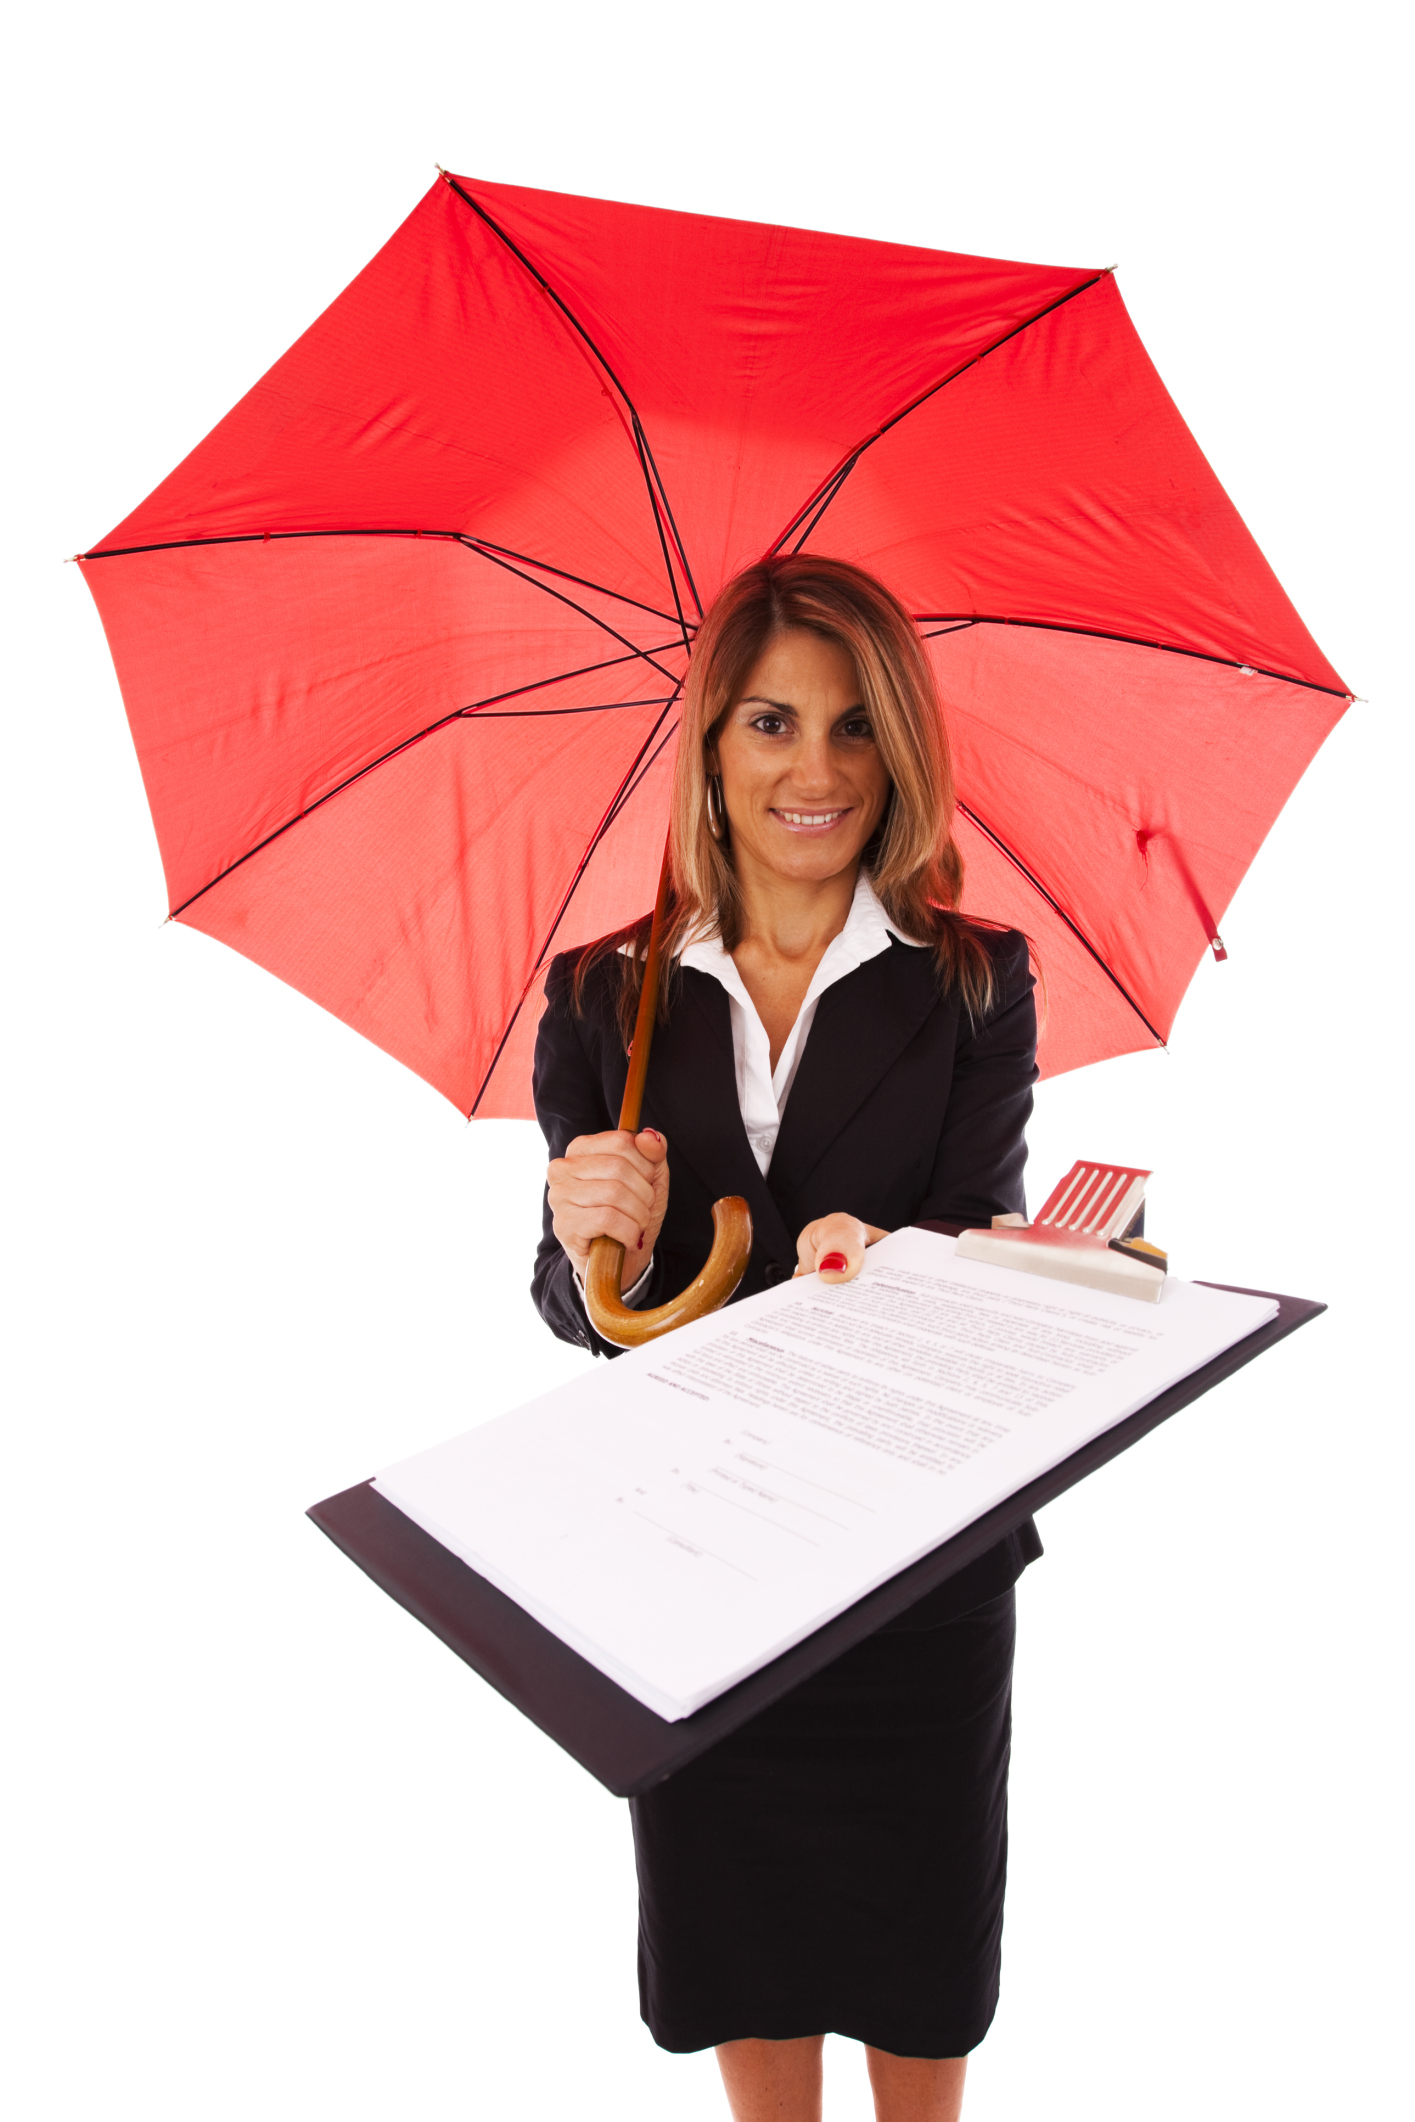 woman holding a red umbrella and clipboard